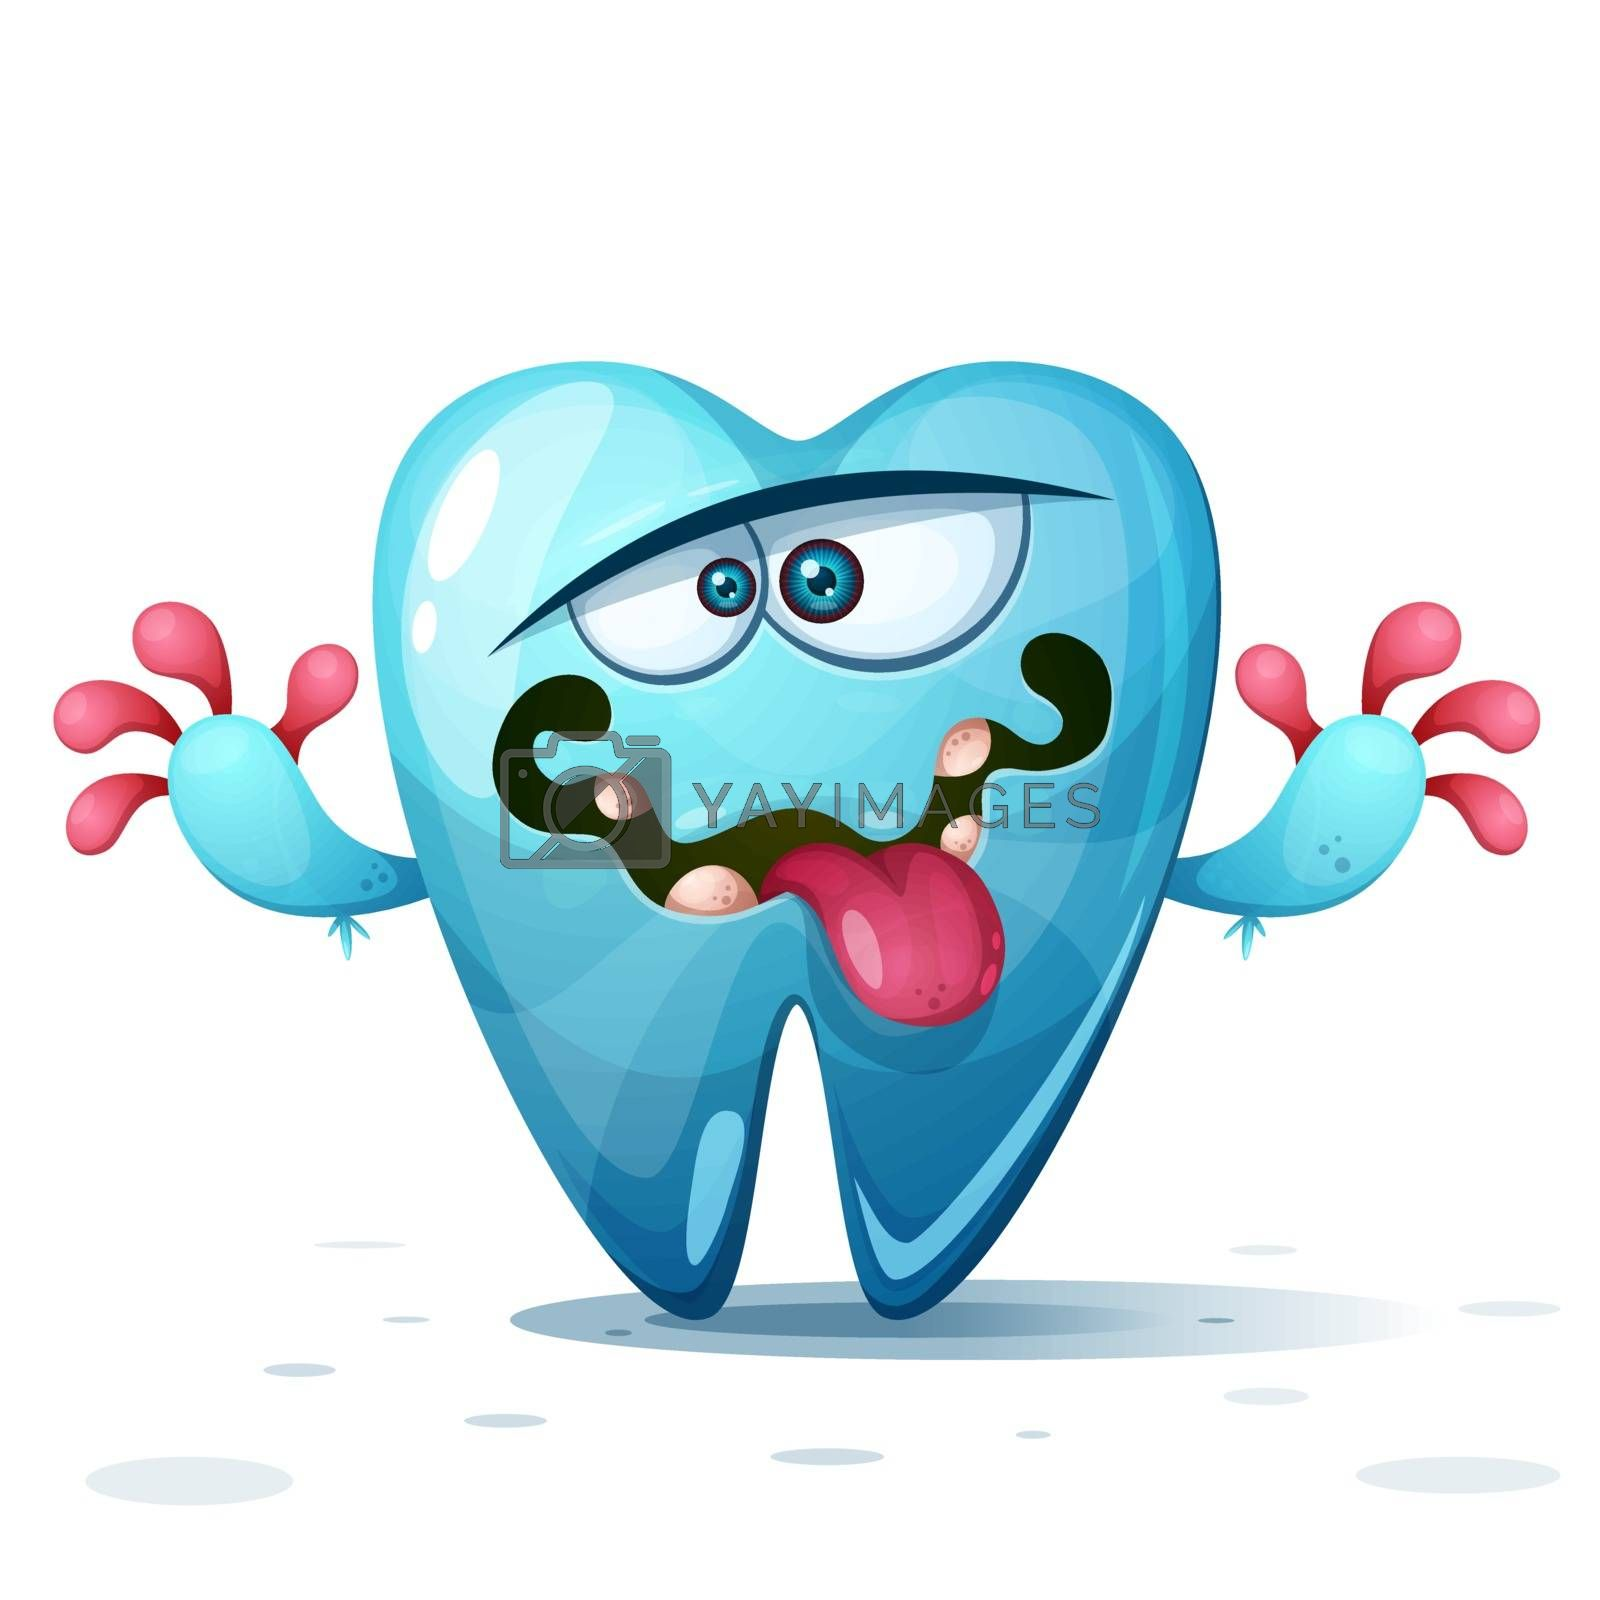 Funny, cute, crazy tooth characters. Cartoon illustration. by rwgusev